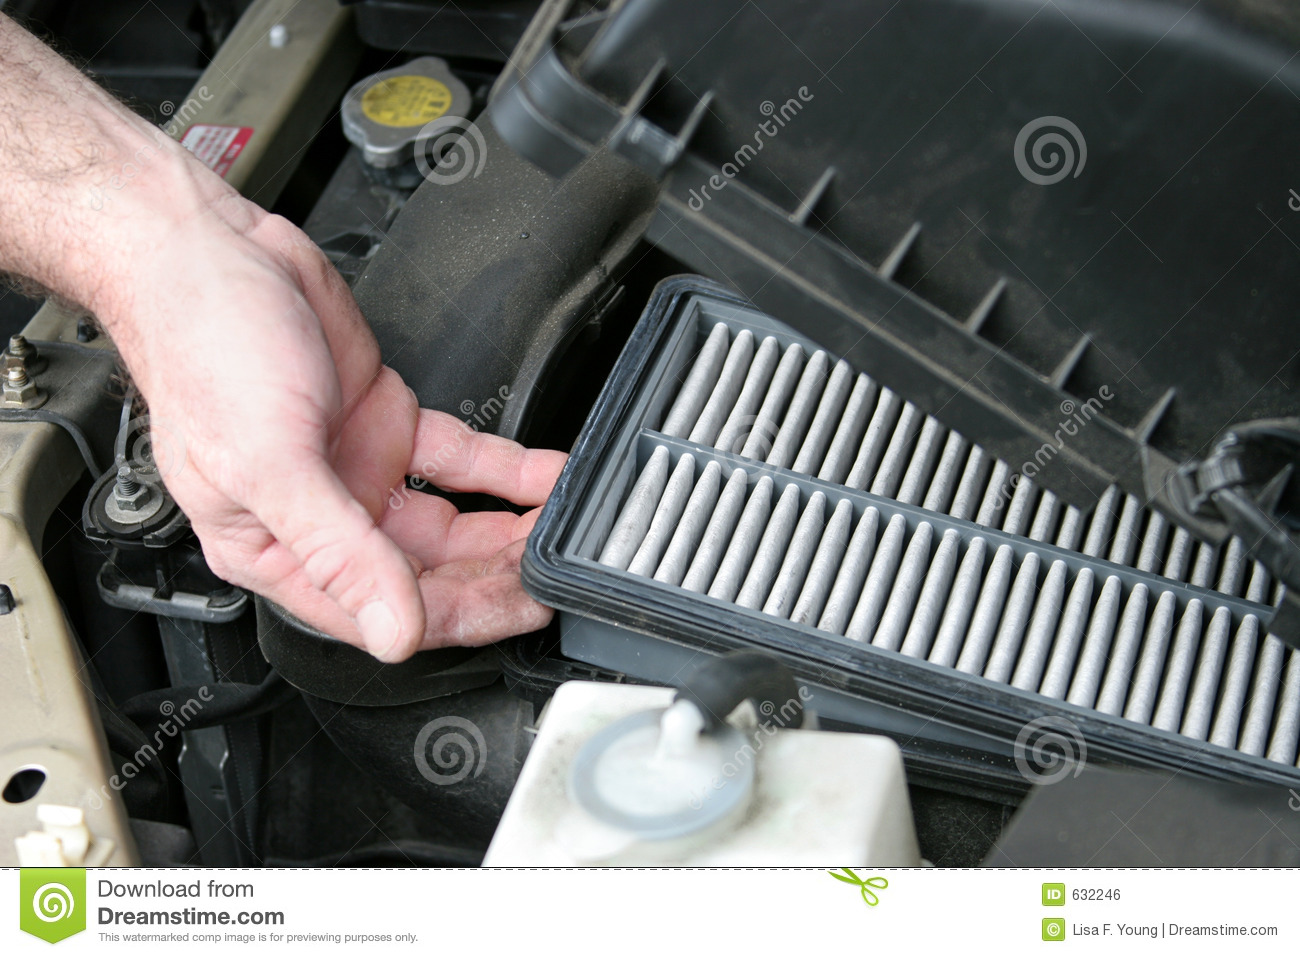 Nissan 46 Service >> Dirty Car Air Filter stock photo. Image of petrol, motor ...